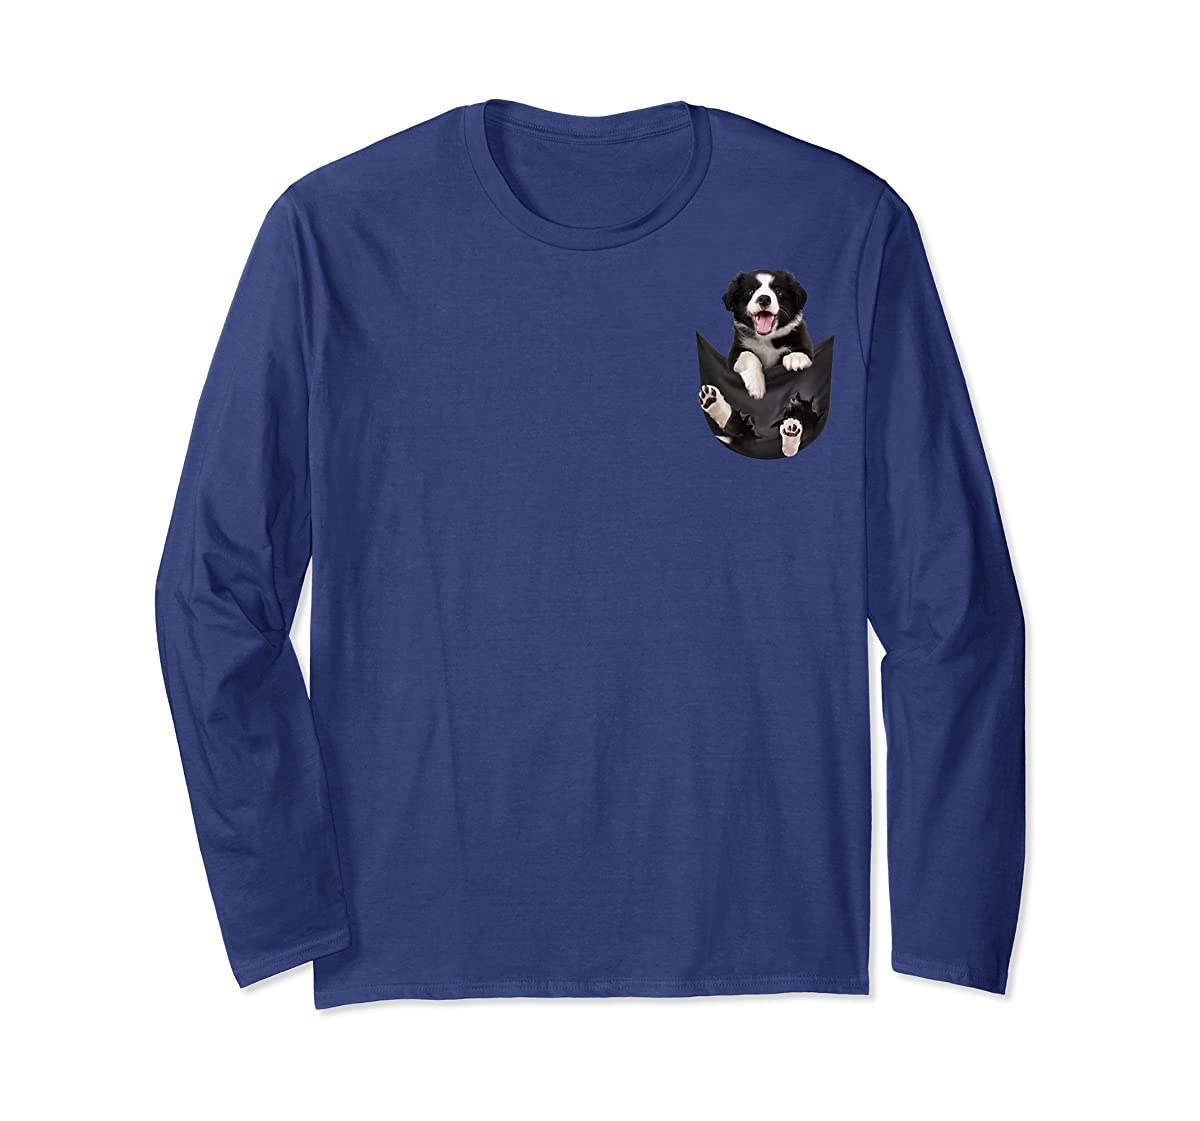 Gift dog funny cute shirt - Border Collie in pocket shirt T-Shirt-Long Sleeve-Navy